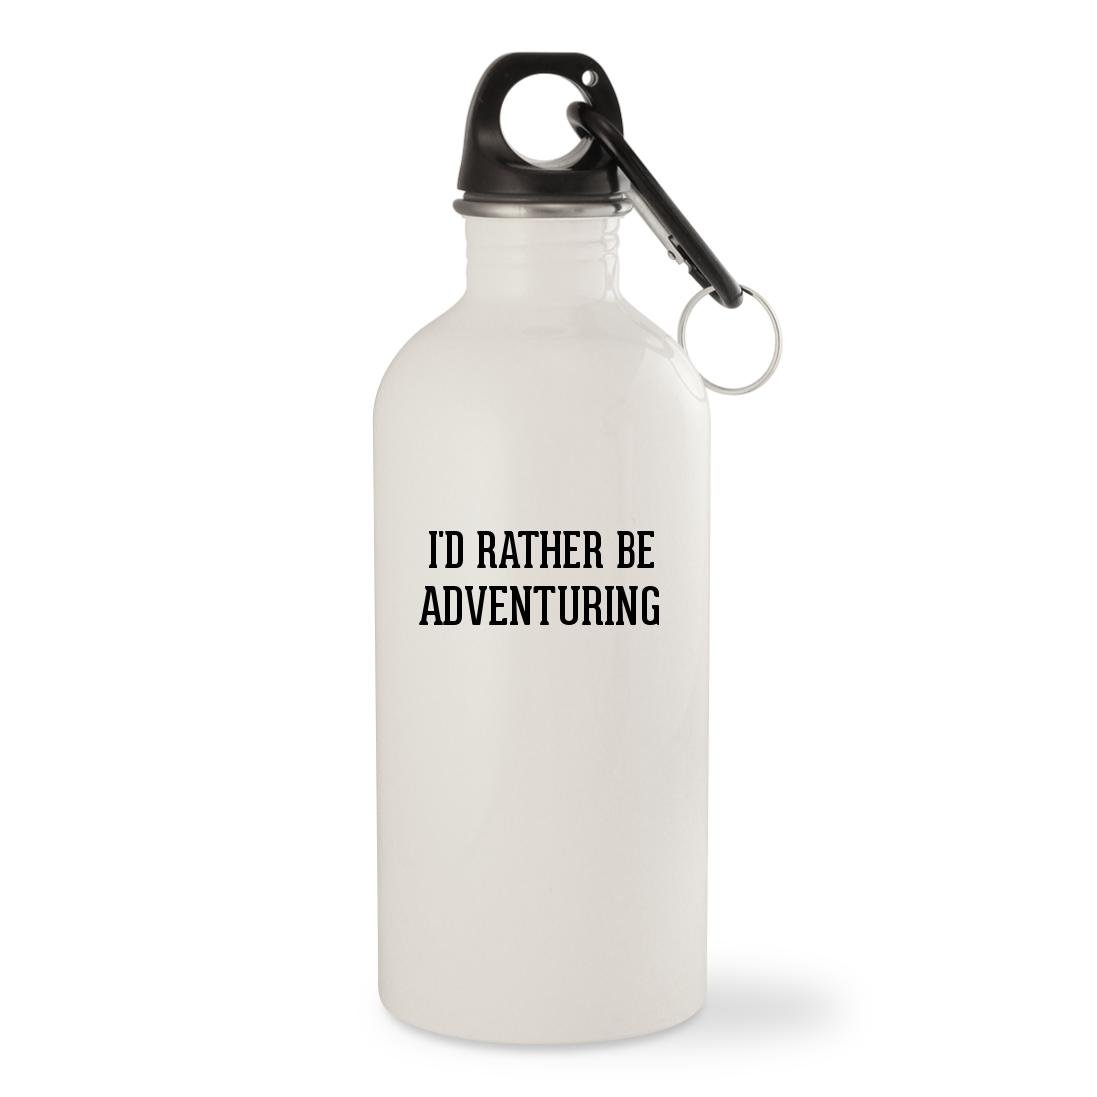 I'd Rather Be ADVENTURING - White 20oz Stainless Steel Water Bottle with Carabiner